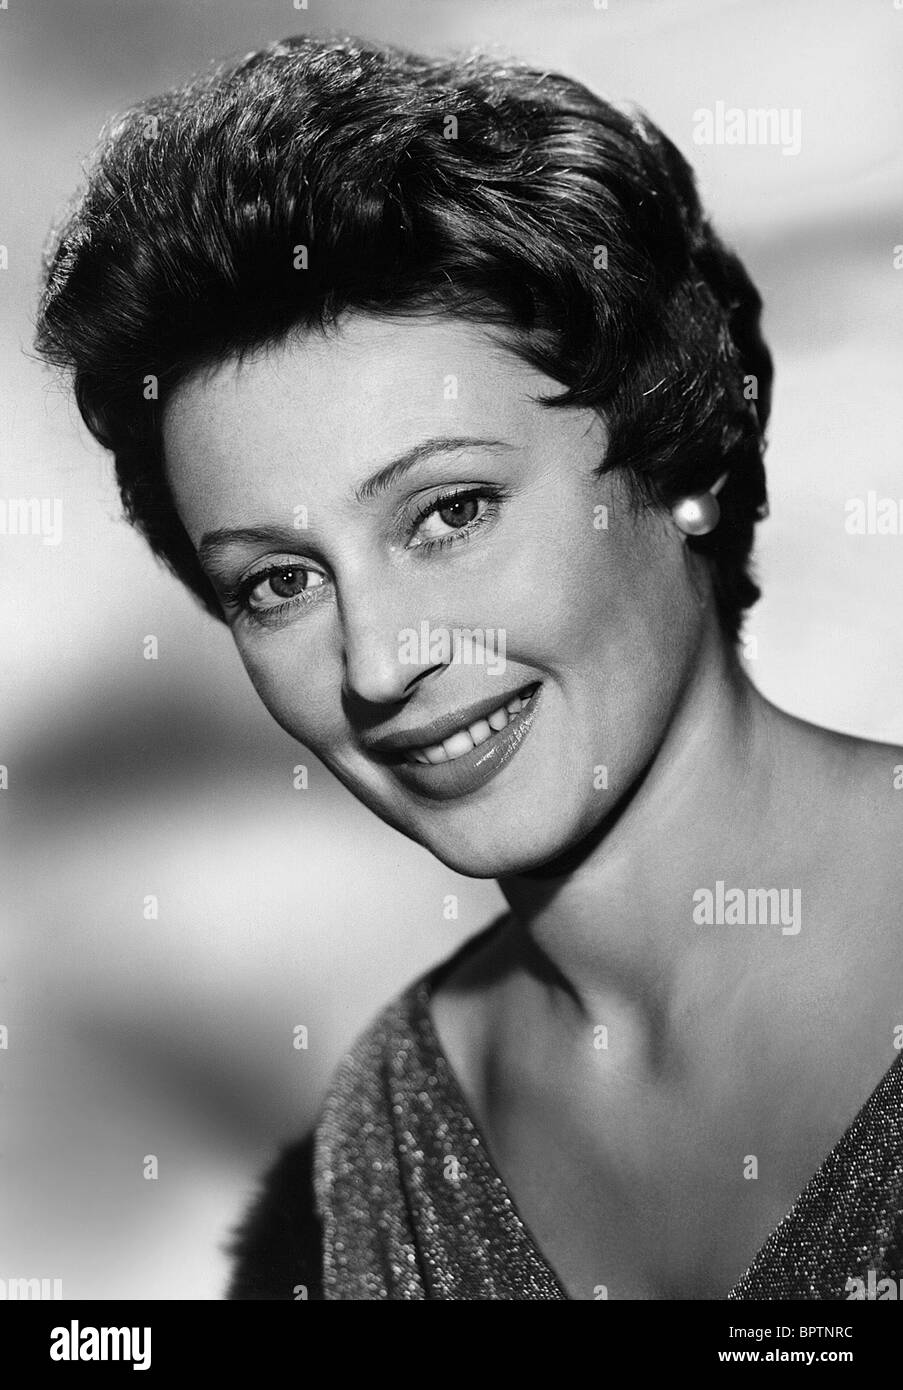 ELFIE PERTRAMER ACTRESS (1956) - Stock Image